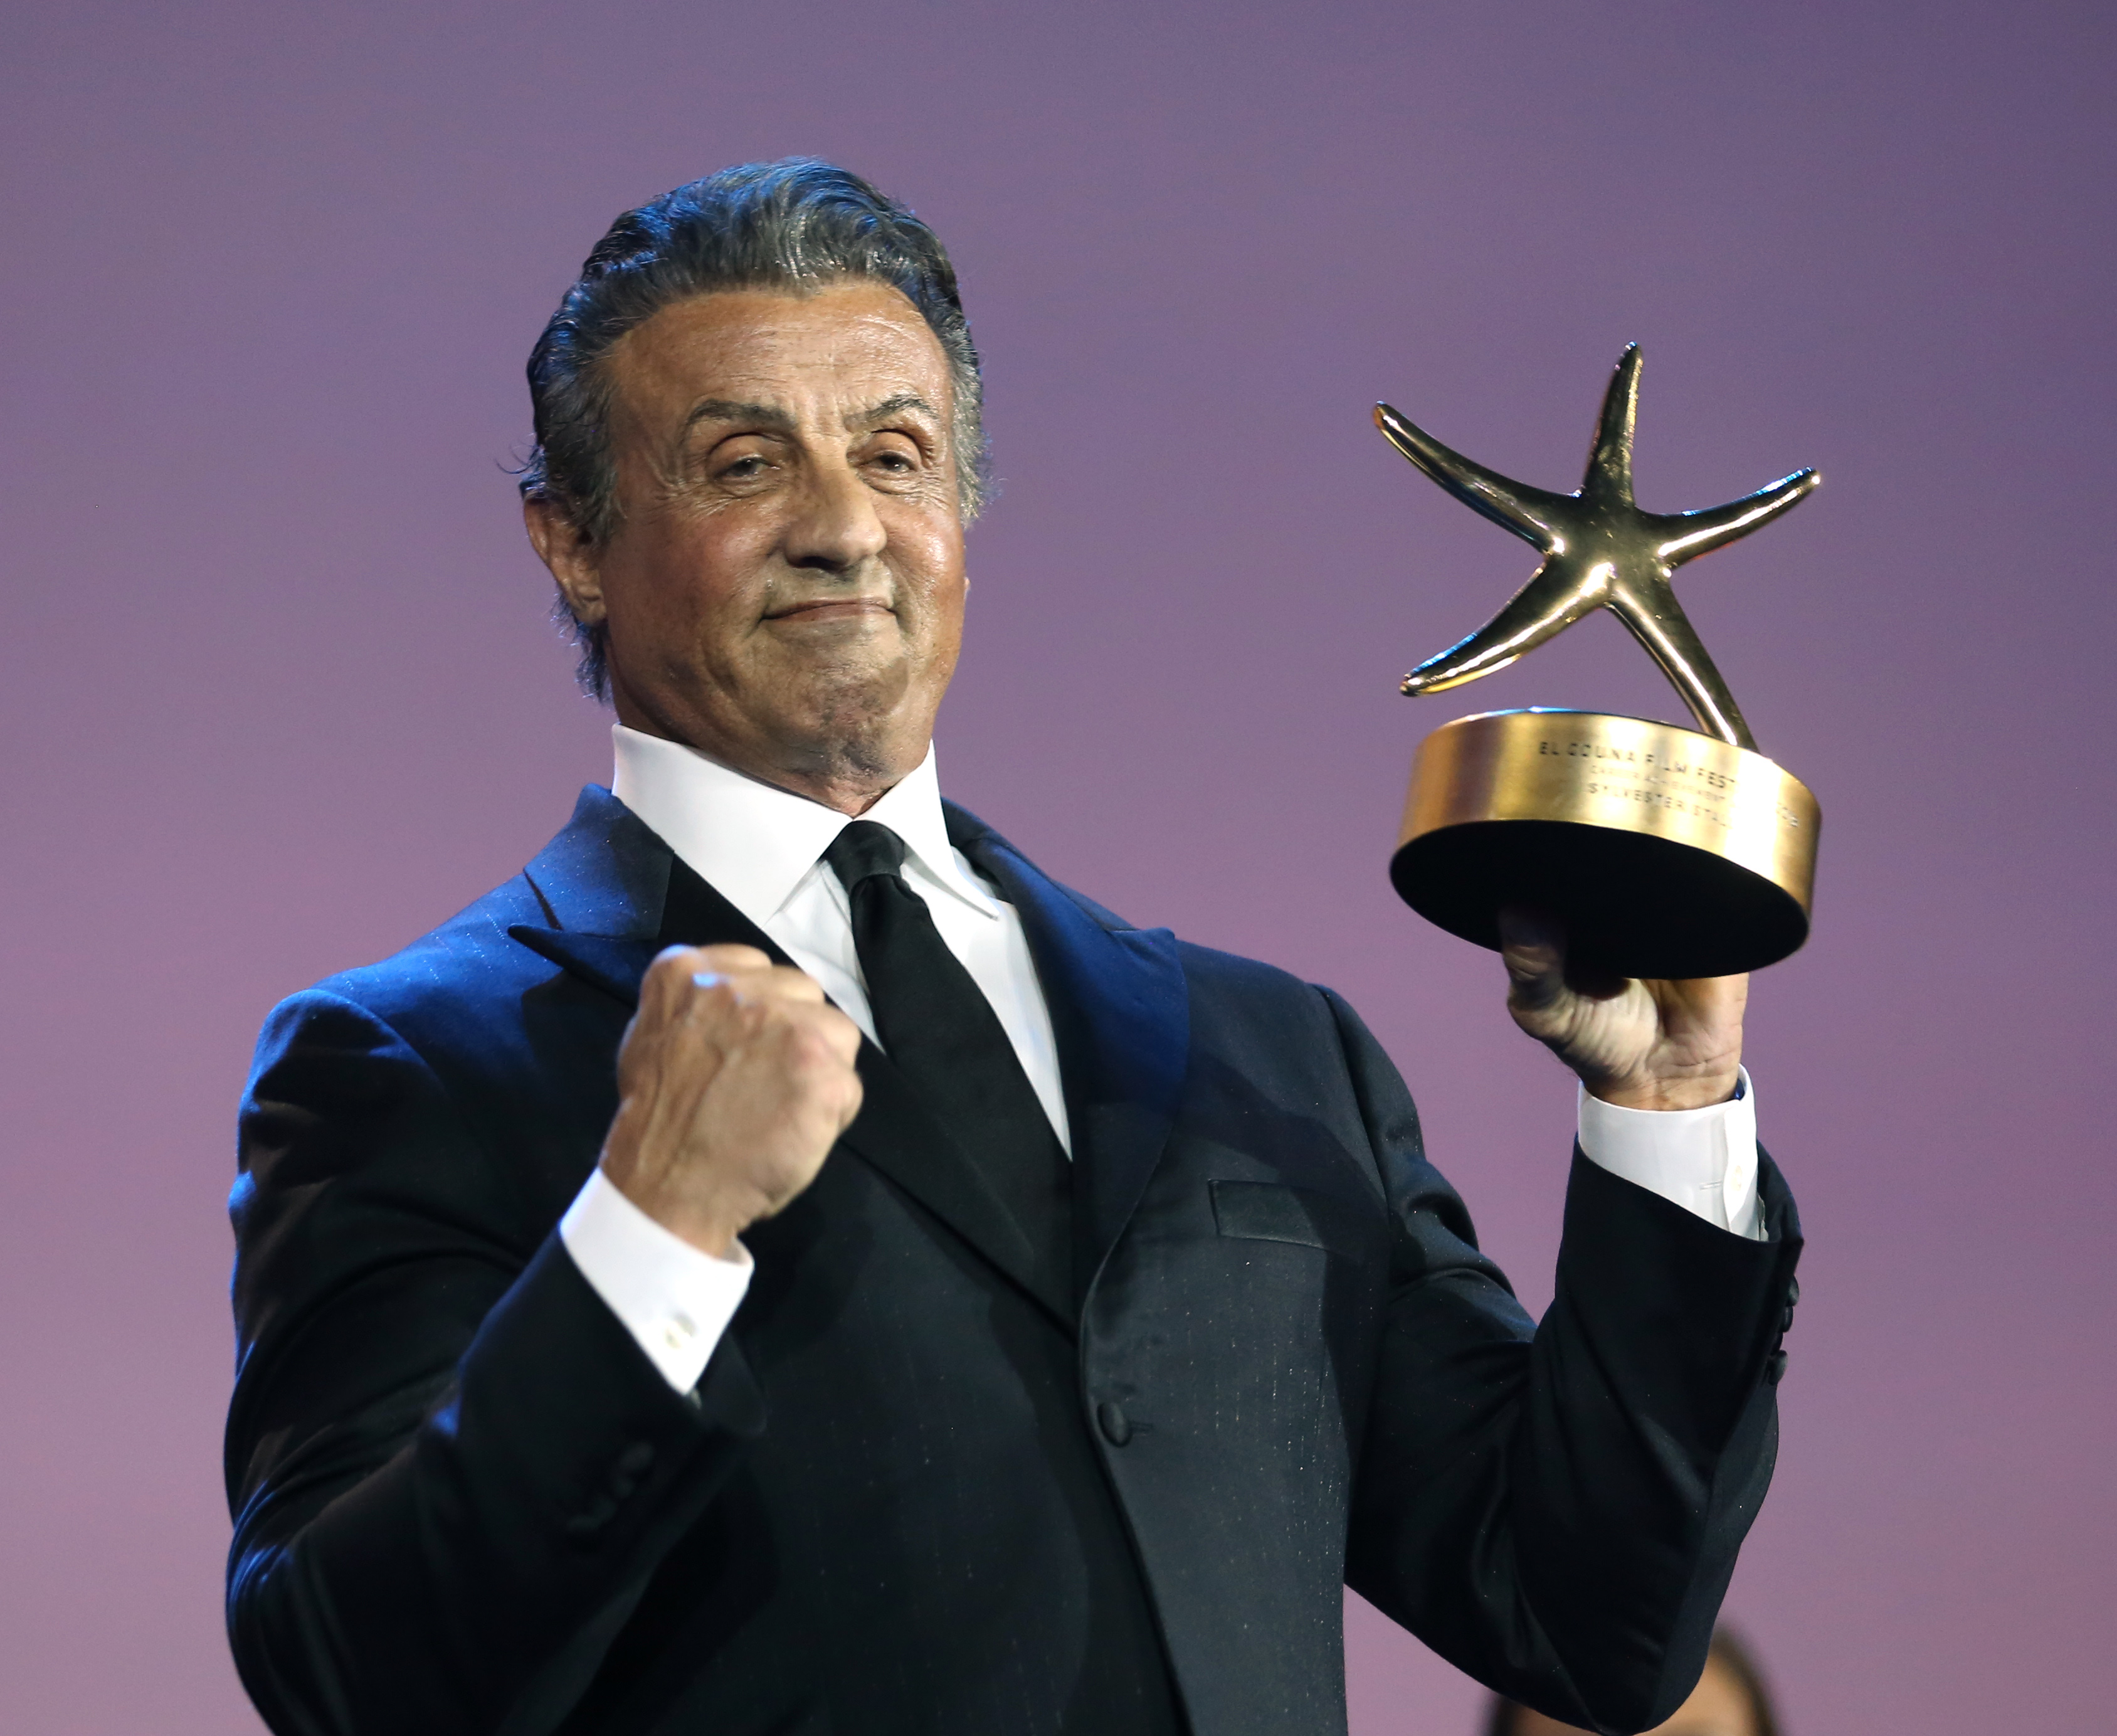 Sylvester Stallone, 'A Land Imagined' Honored at El Gouna Film Festival